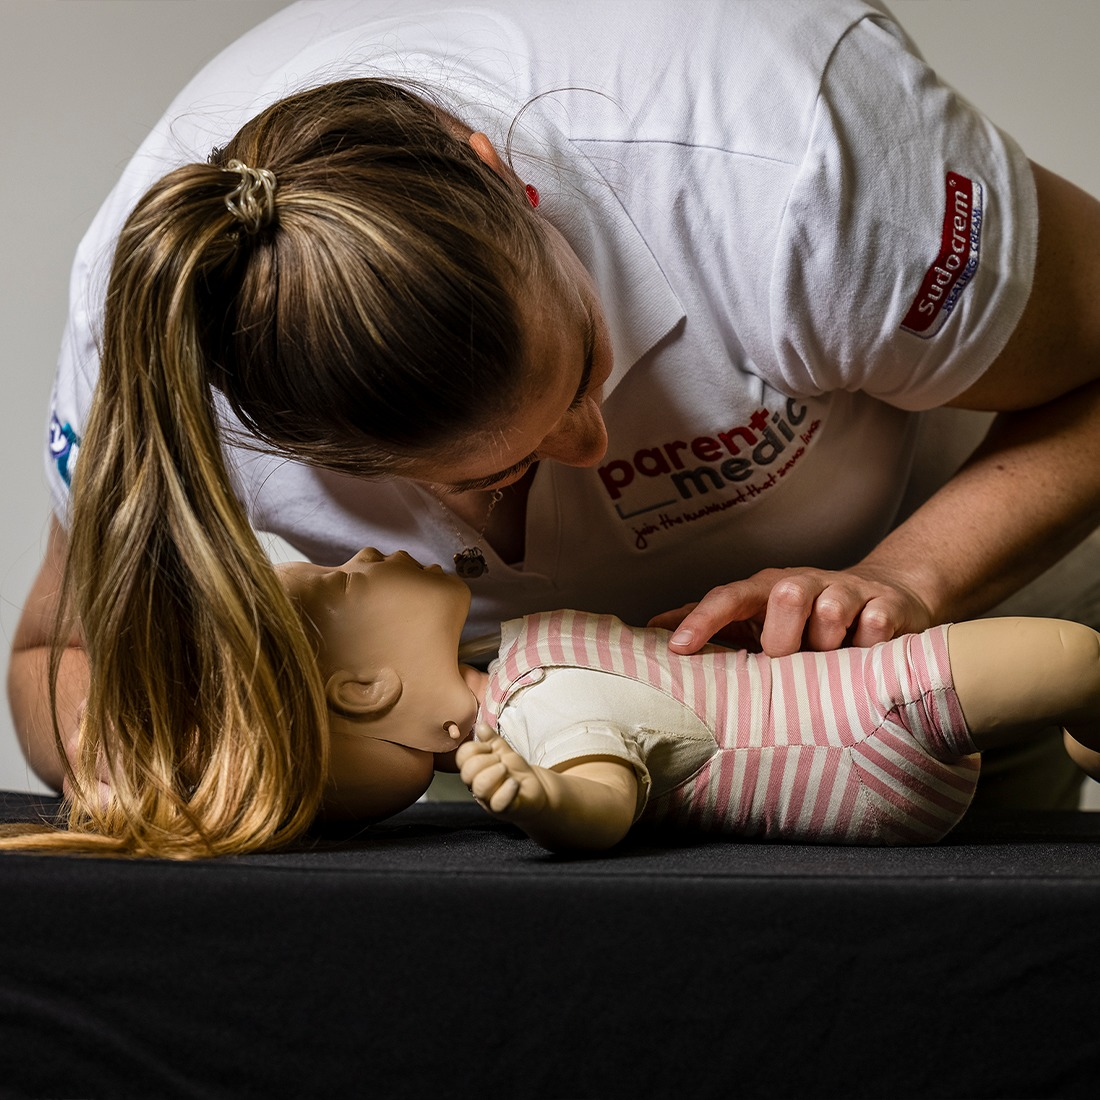 Women leaning over a baby doll showing how to listen for a childs breath if they are unwell